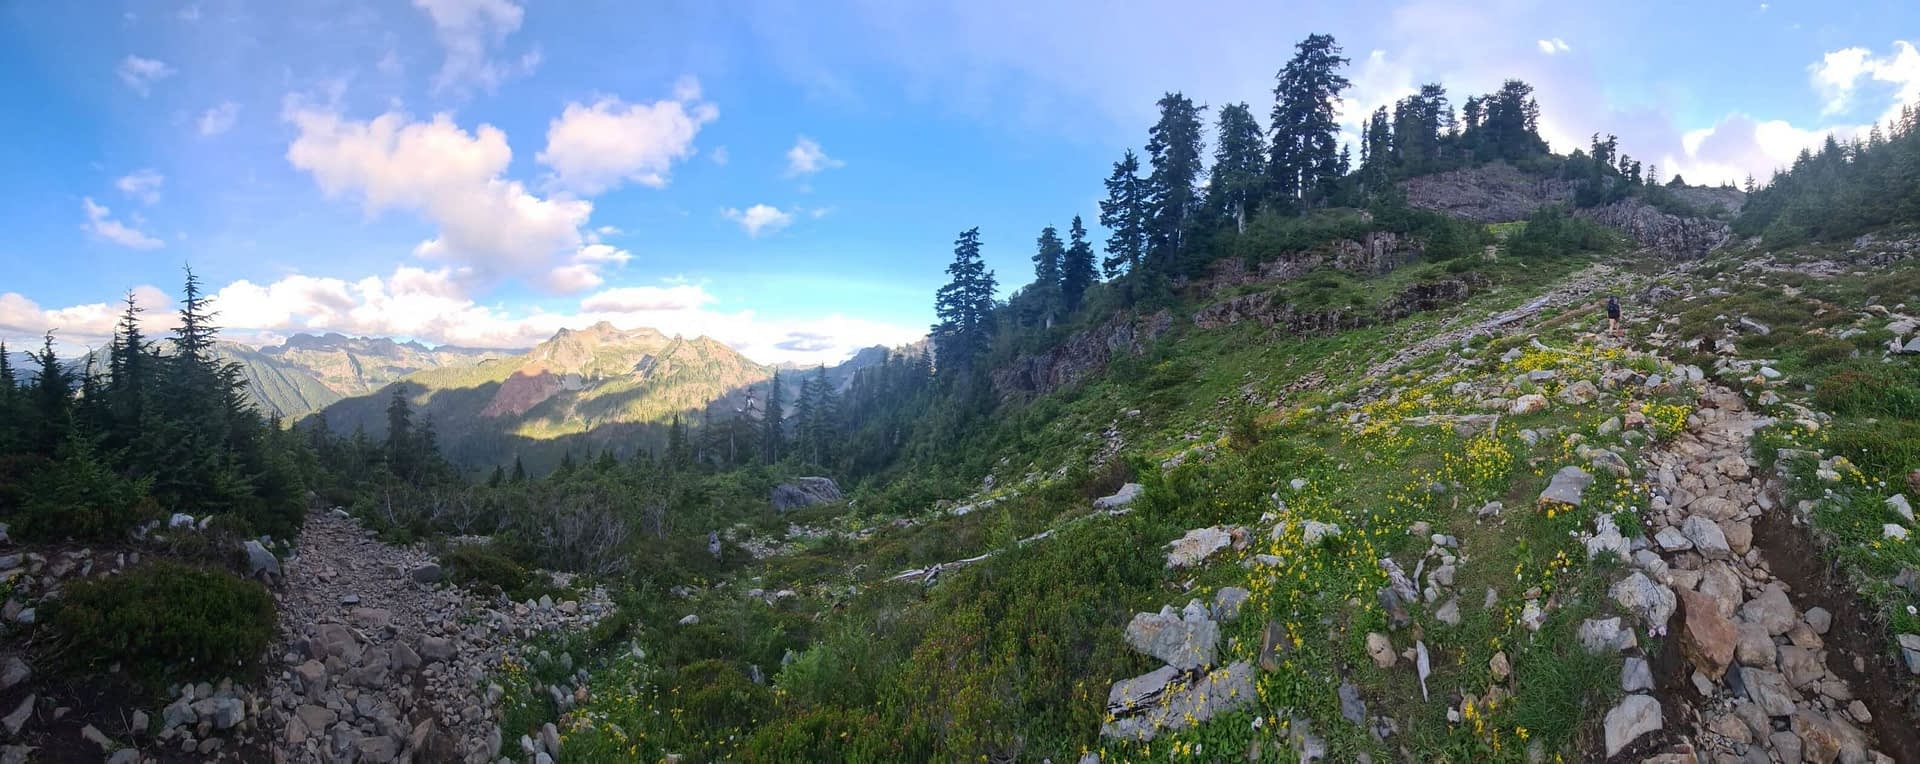 panoramic view of gothic basin trail in verlot, washington, wildflowers and mountain views